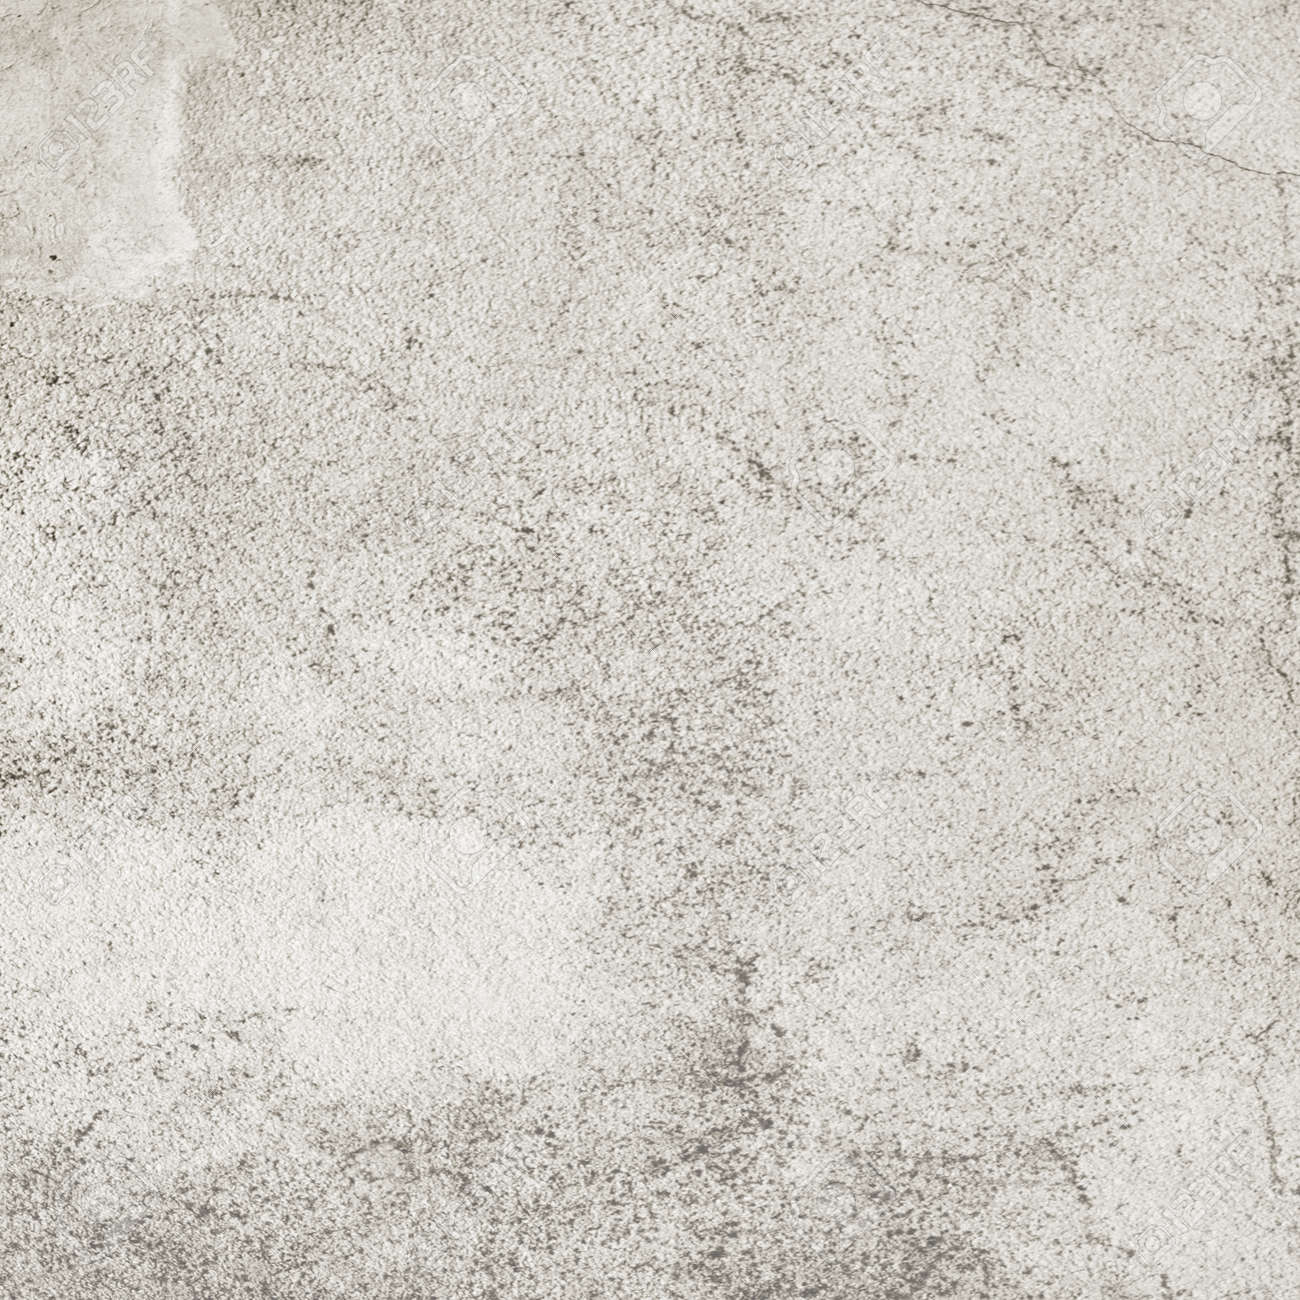 white background grunge wall texture Stock Photo - 23076890